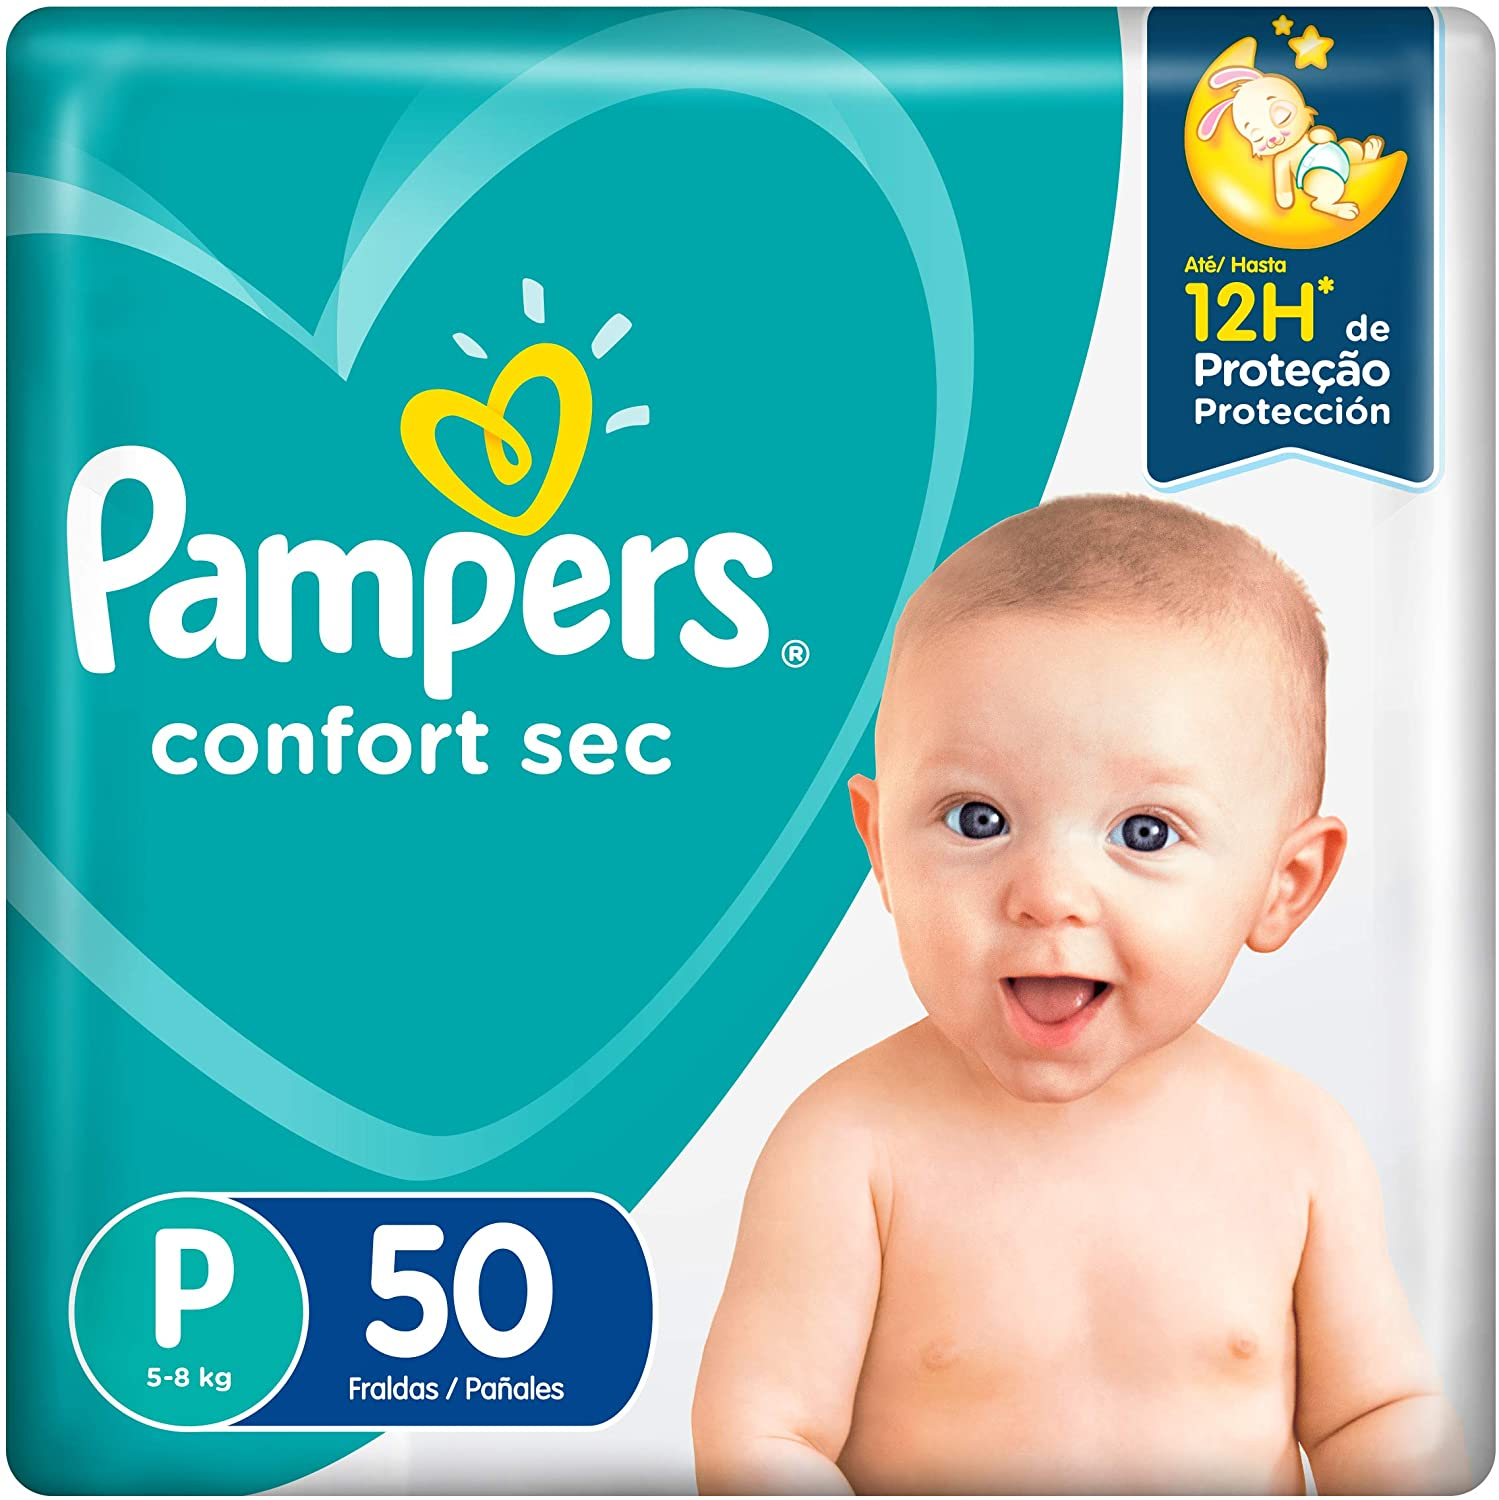 Pampers Confort Sec P 50 Unidades, Pampers